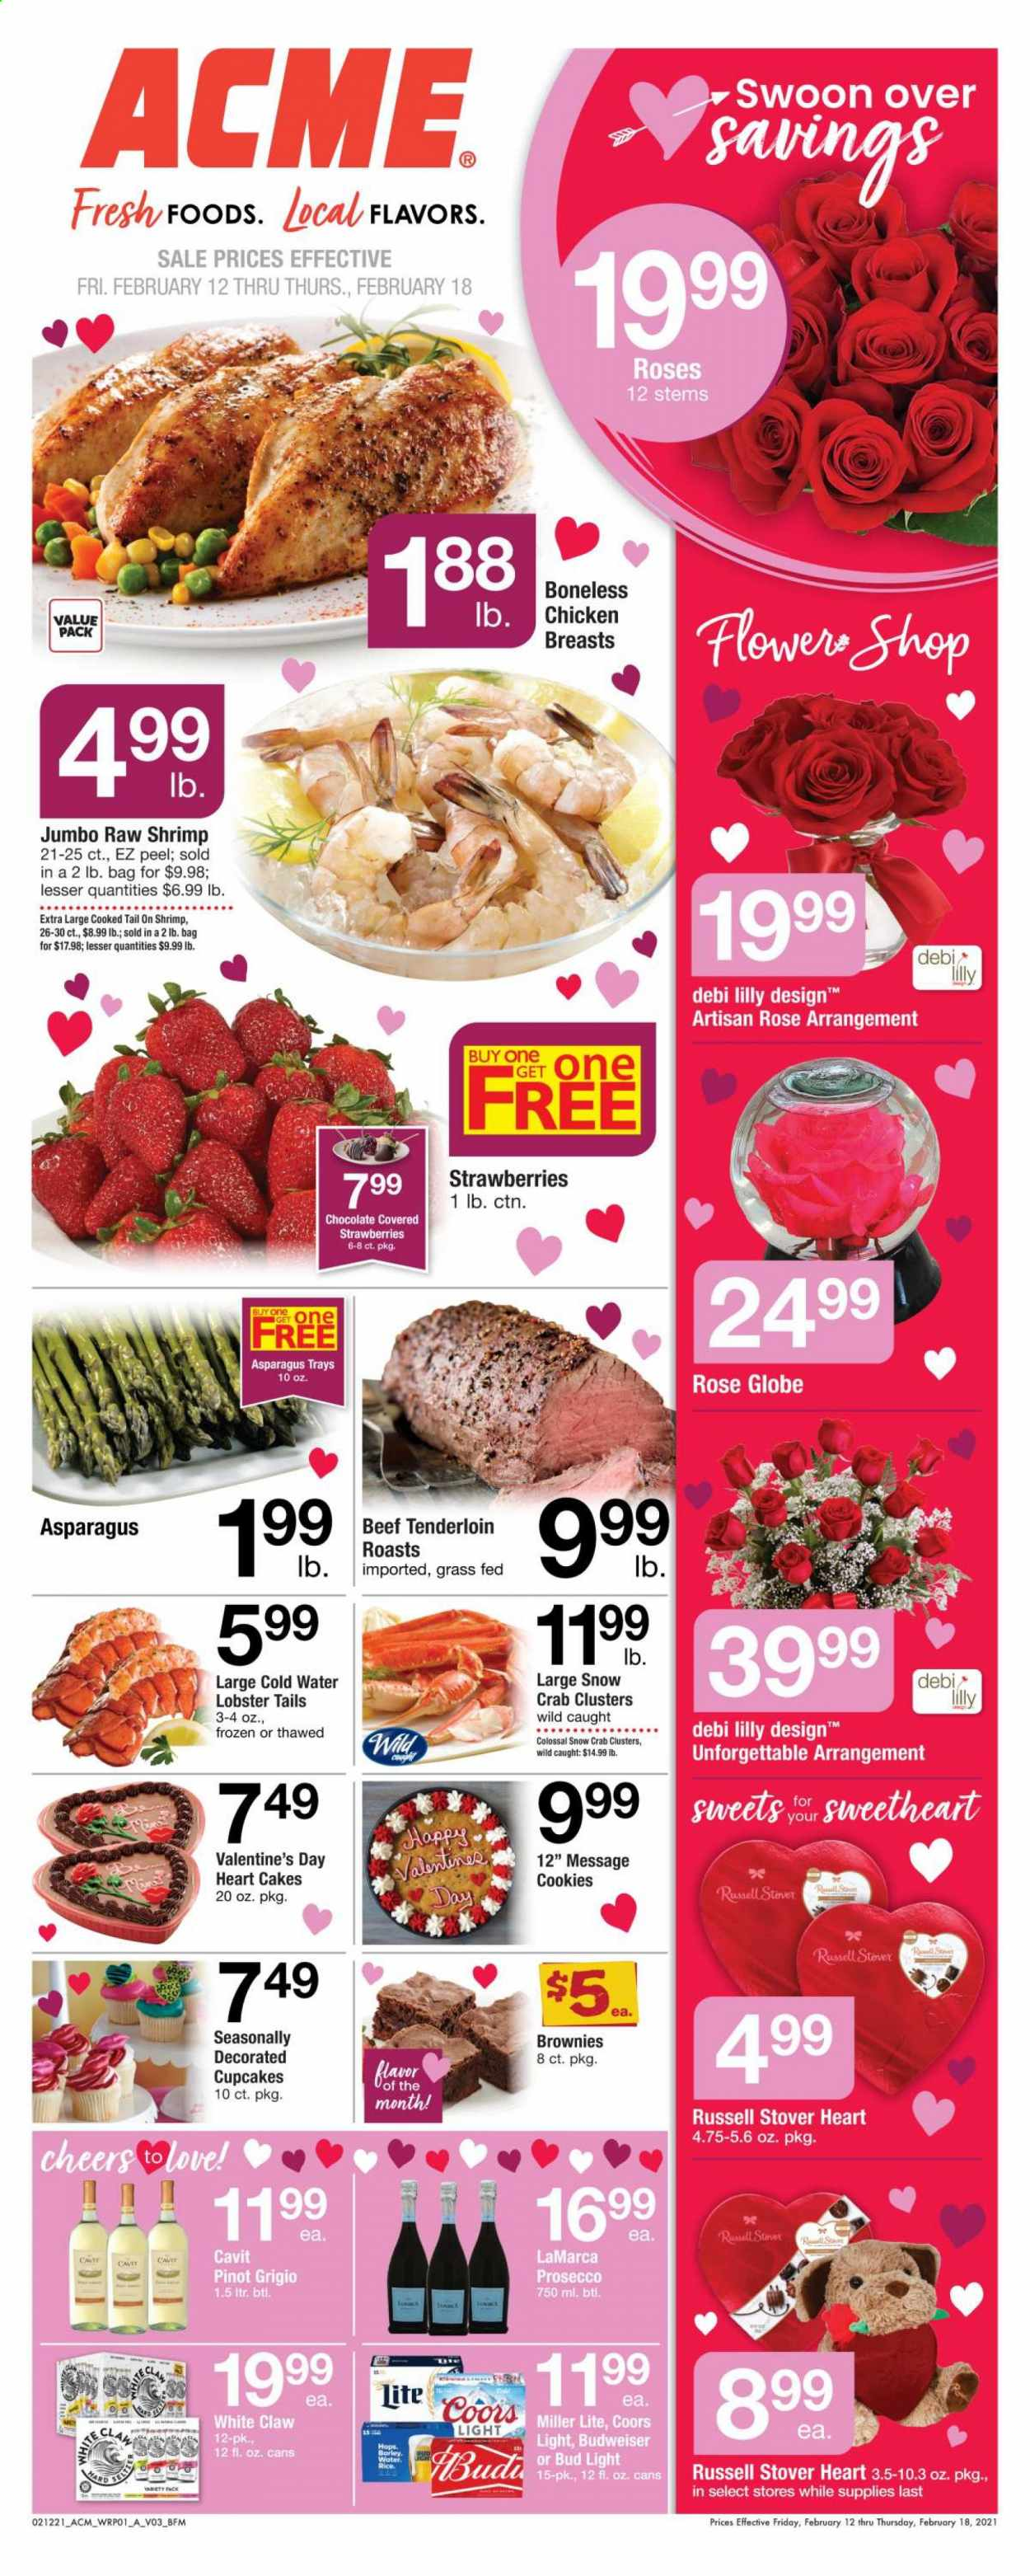 ACME Flyer - 02.12.2021 - 02.18.2021 - Sales products - cupcake, cake, brownies, lobster, crab, lobster tail, shrimps, strawberries, cookies, prosecco, Pinot Grigio, White Claw, beer, Budweiser, Miller Lite, Coors, Bud Light, chicken, chicken breasts, beef meat, beef tenderloin, water. Page 1.